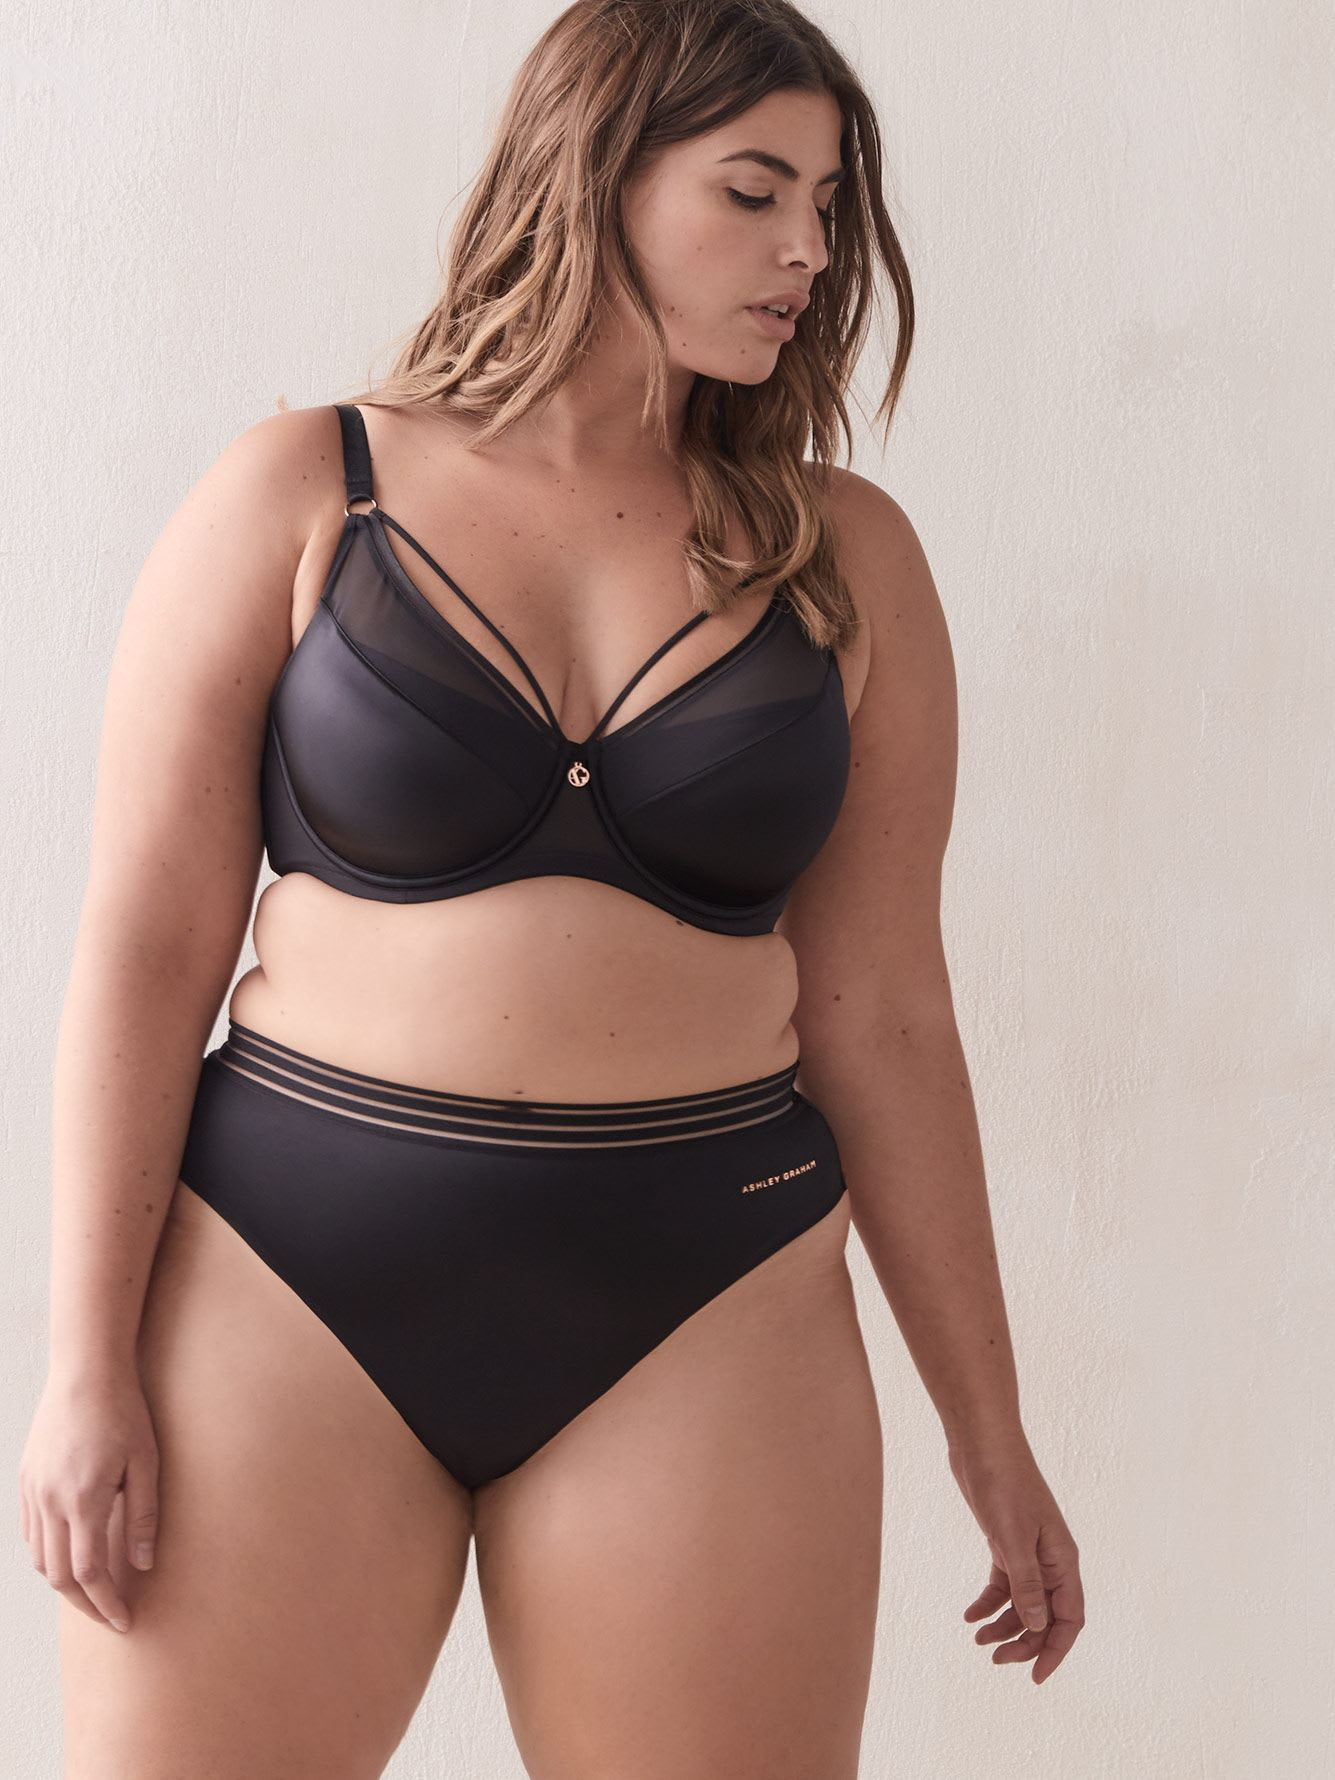 Ashley Graham - Diva Demi Cup Bra, G & H Cups